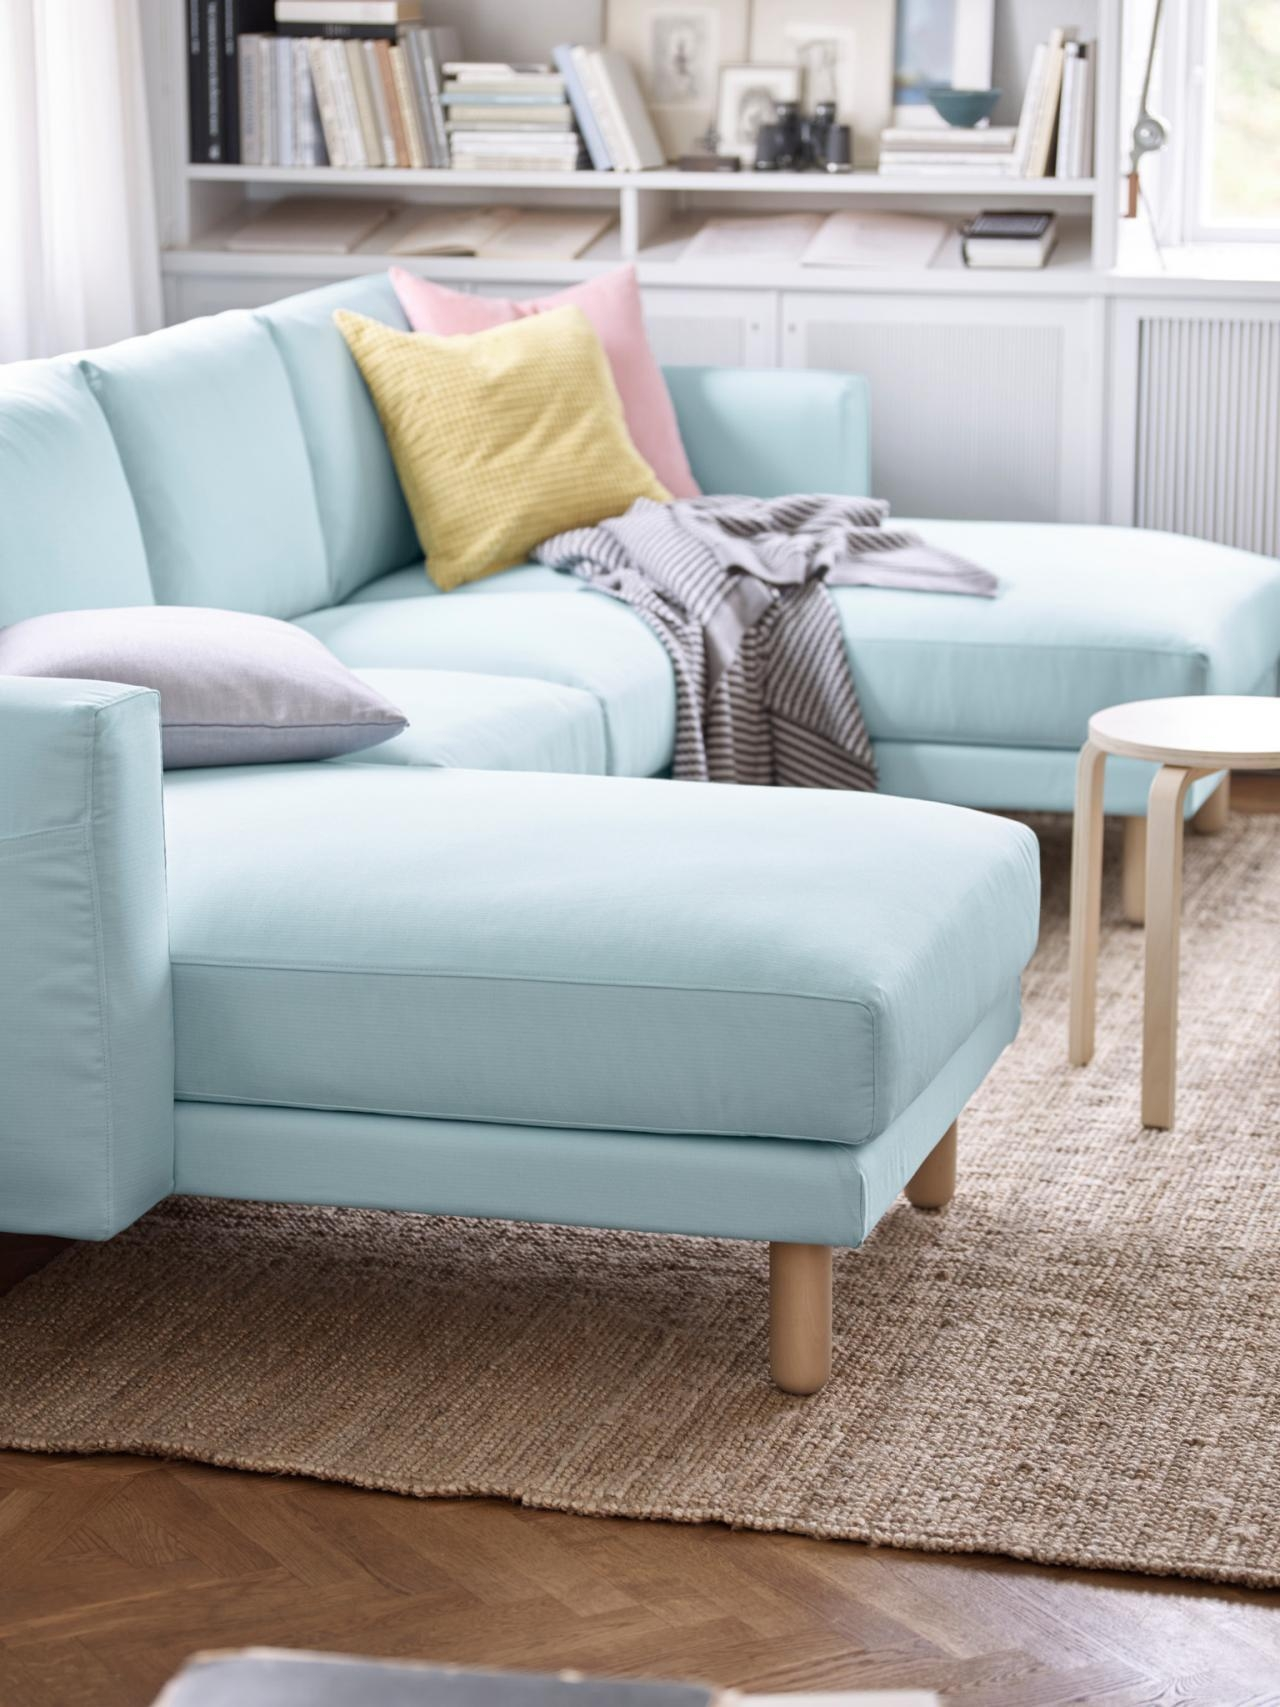 5 Apartment Sized Sofas That Are Lifesavers | Hgtv's Decorating within 68 Inch Sofas